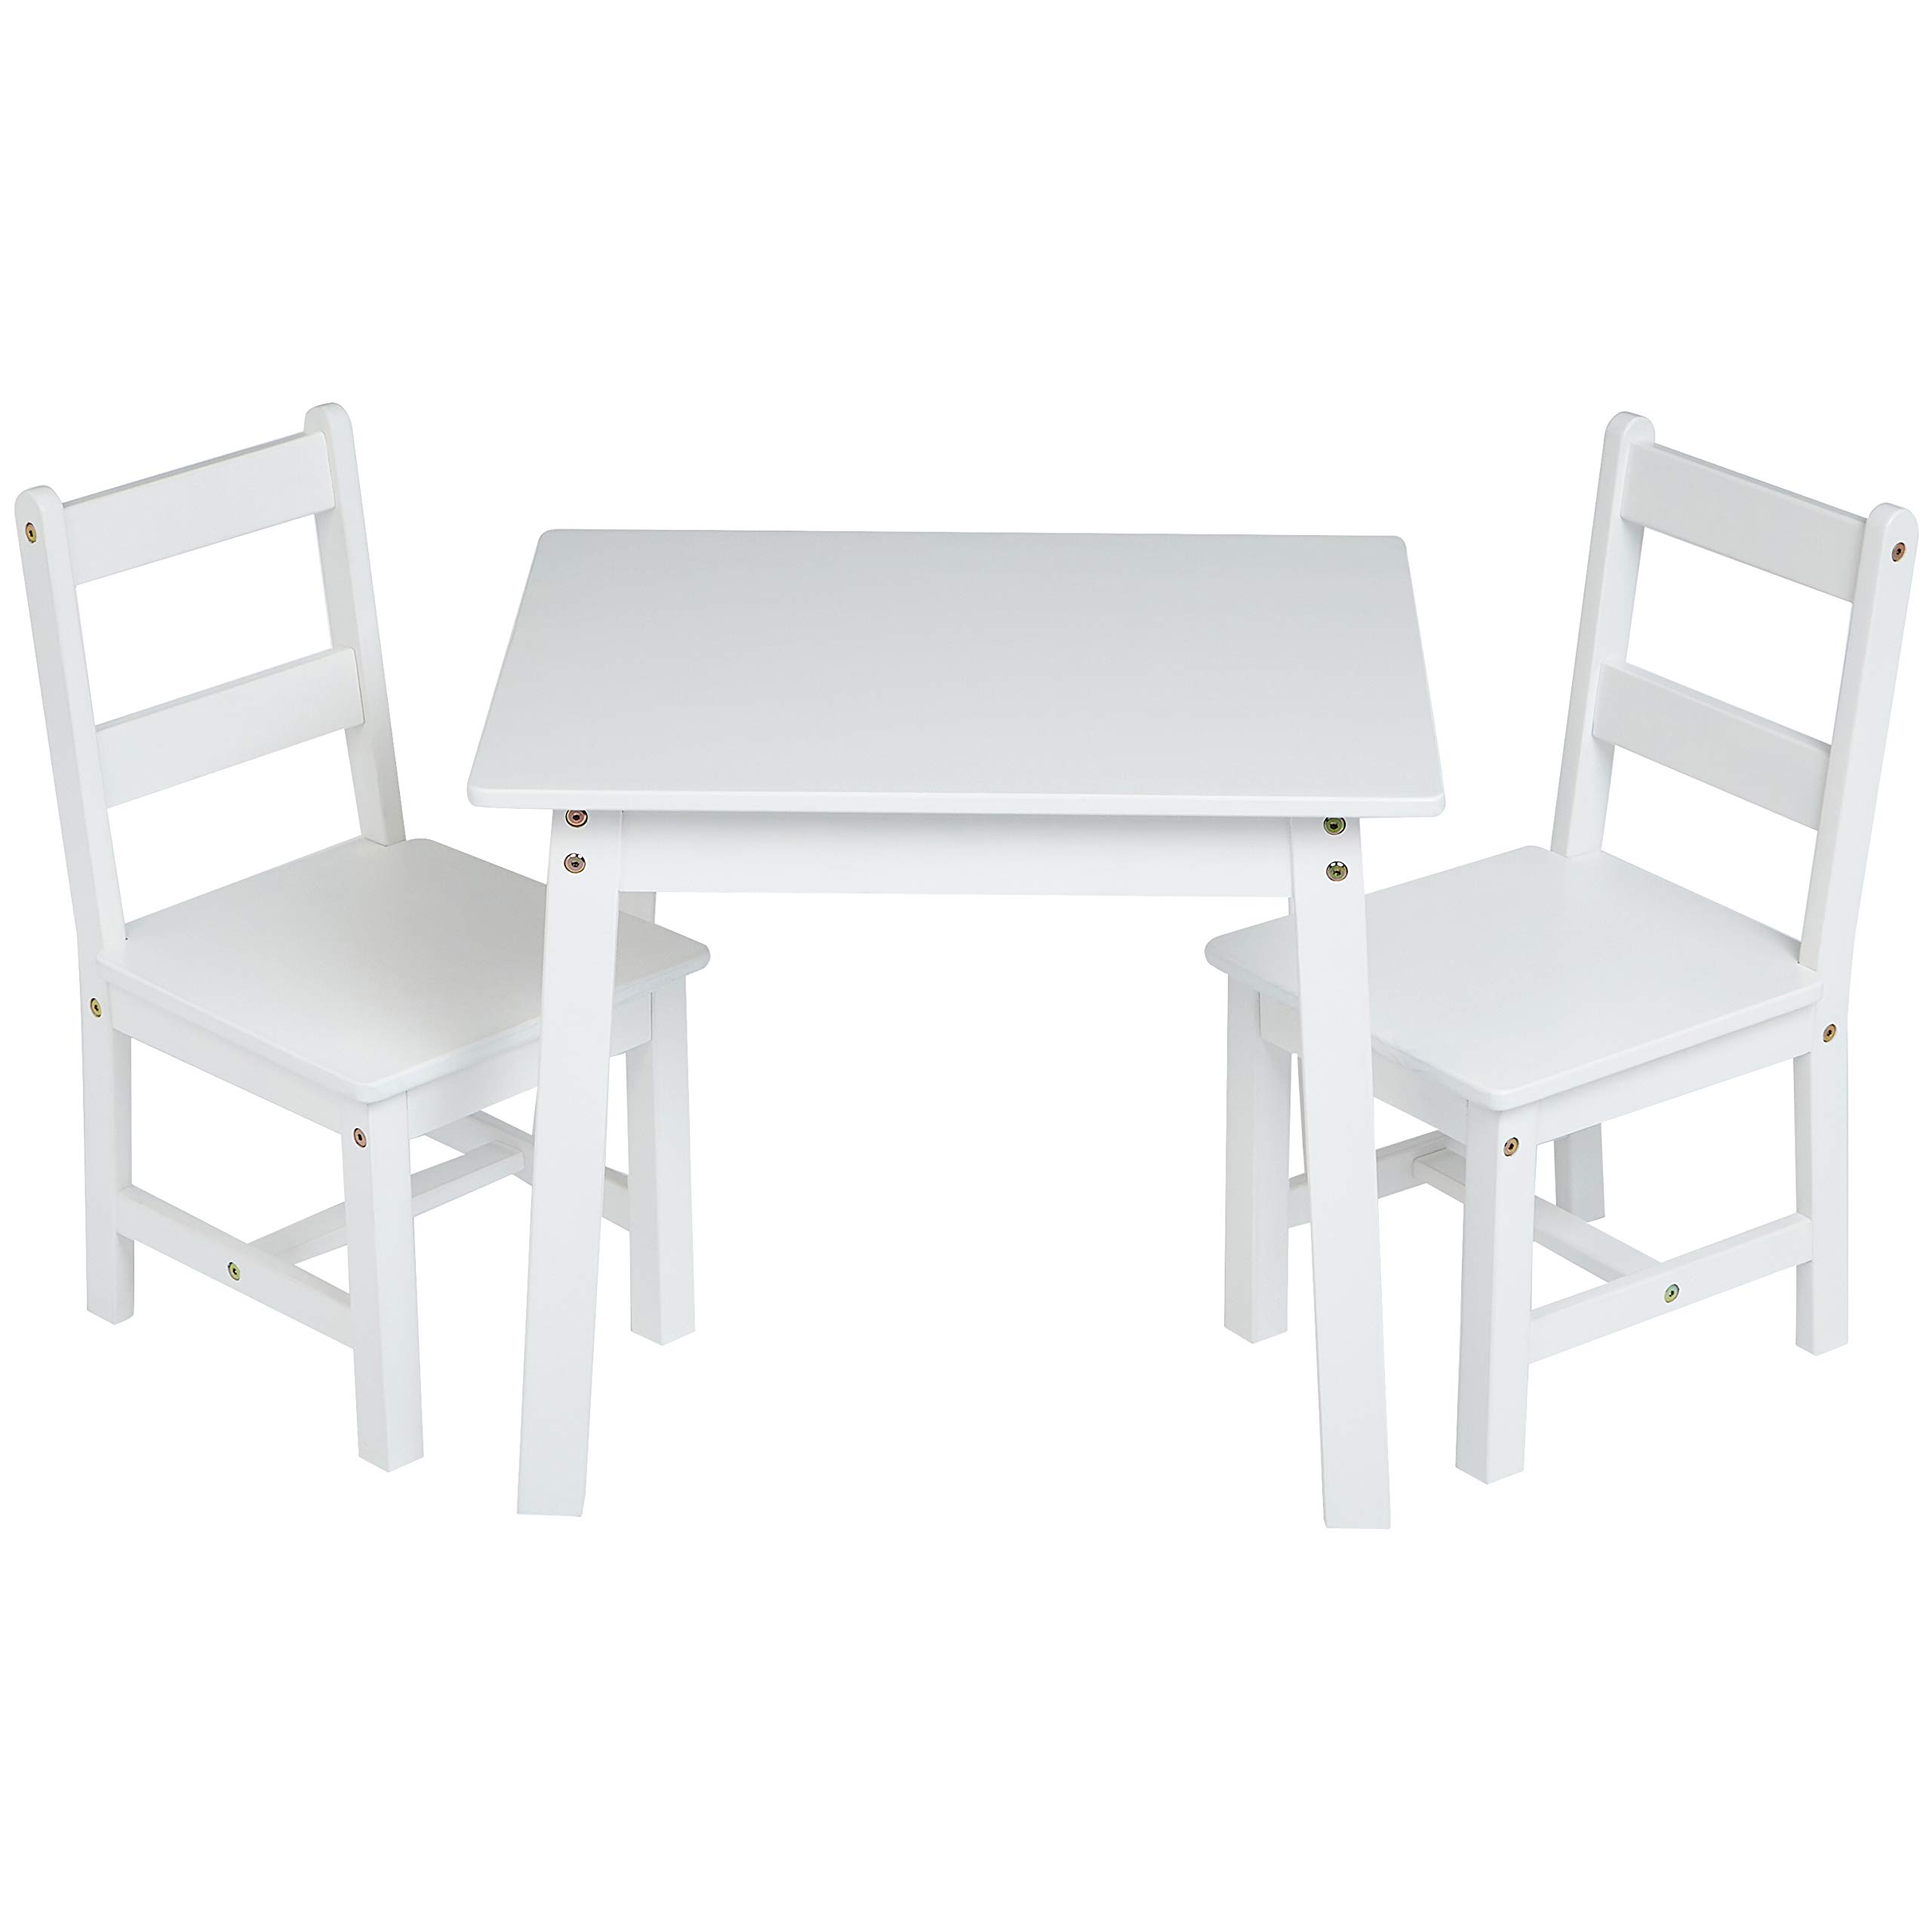 AmazonBasics Kids Solid Wood Table and 2 Chair Set, White by AmazonBasics